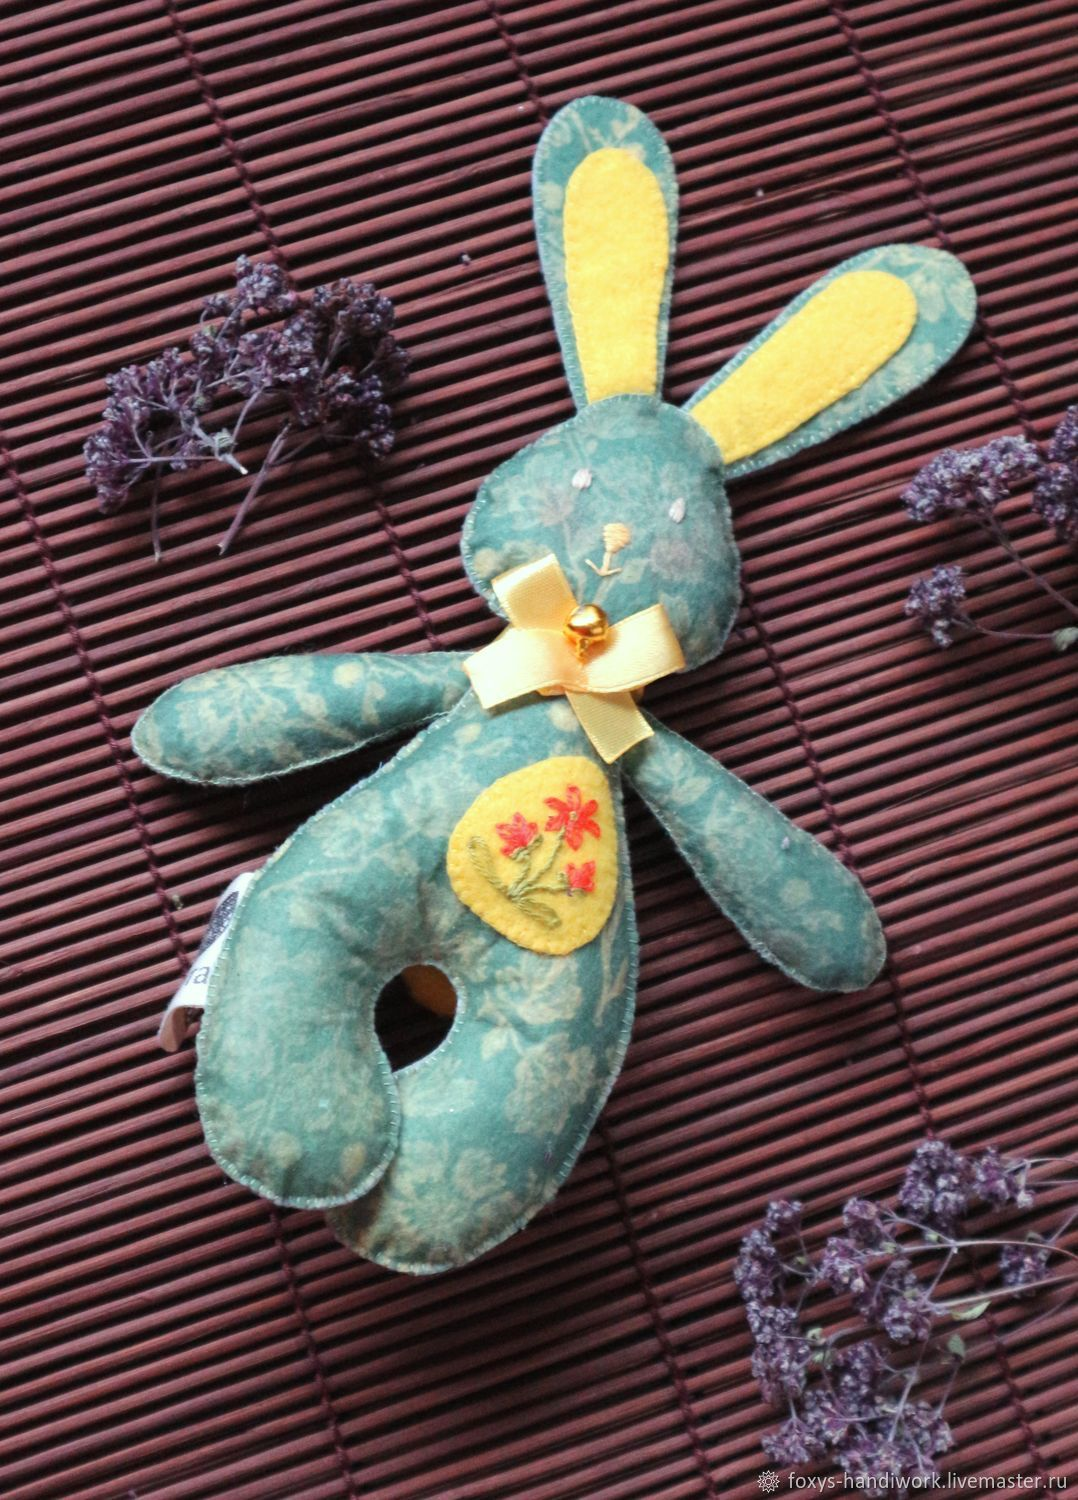 The Easter Bunny out of felt with a floral print and hand embroidery, Stuffed Toys, Tula,  Фото №1